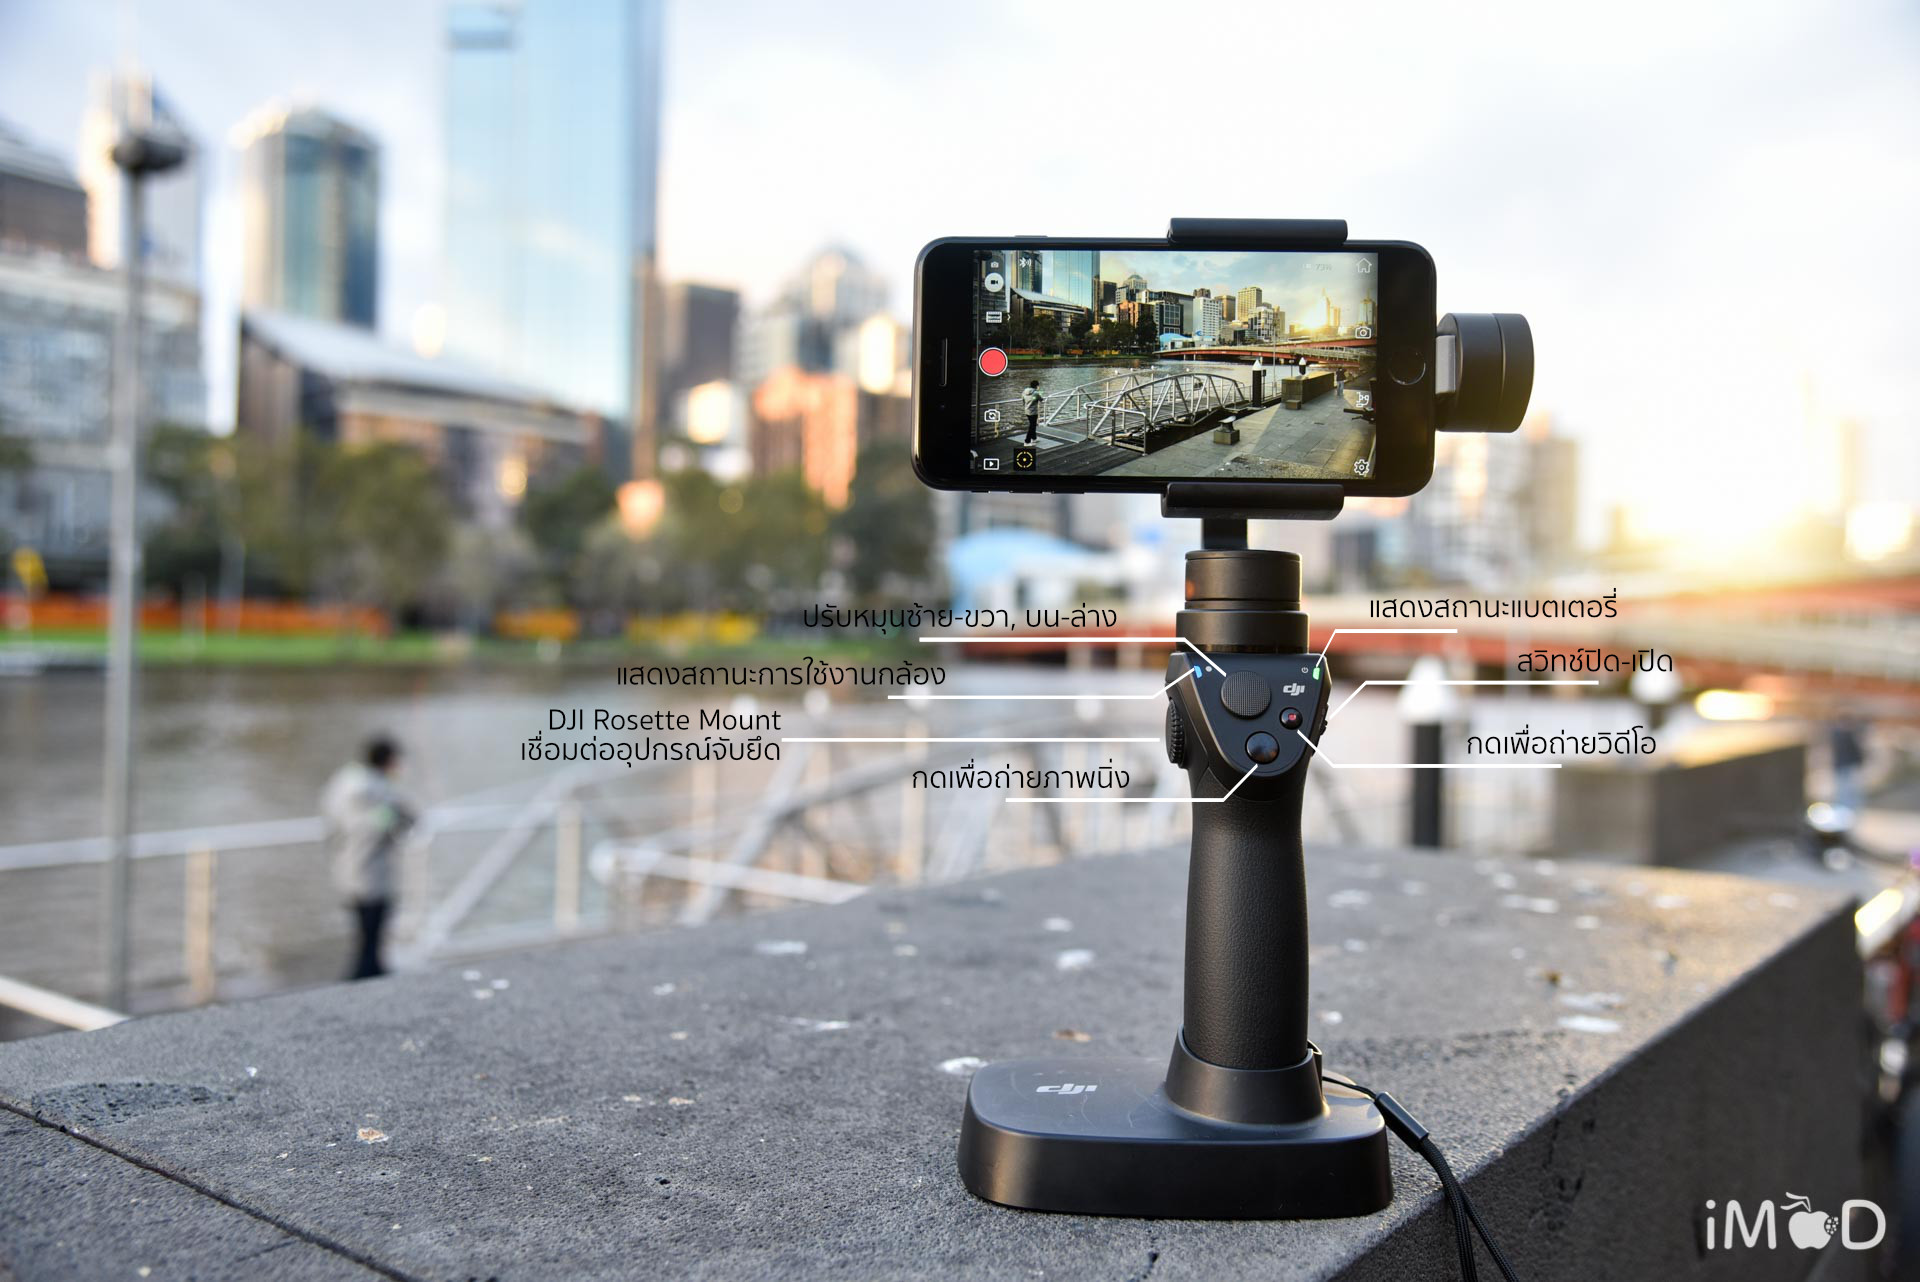 dji-osmo-mobile-with-stand-3